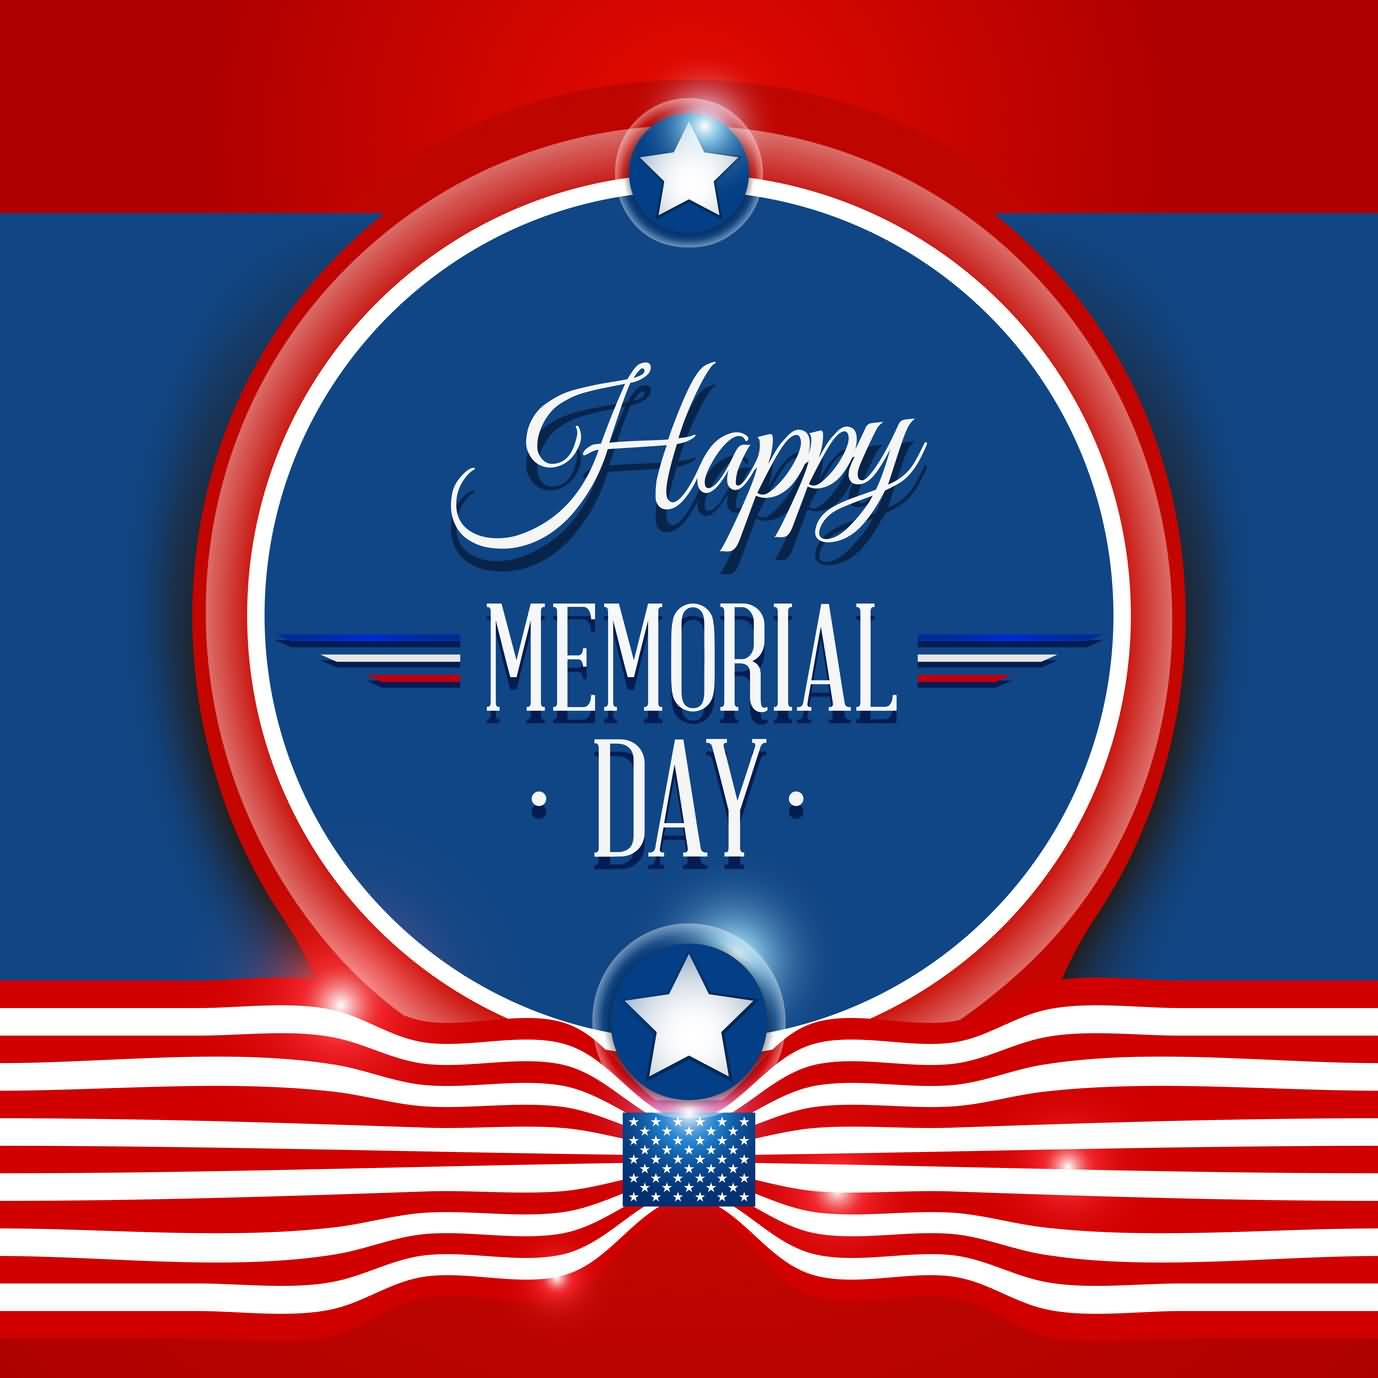 Happy Memorial Day Cards 2019